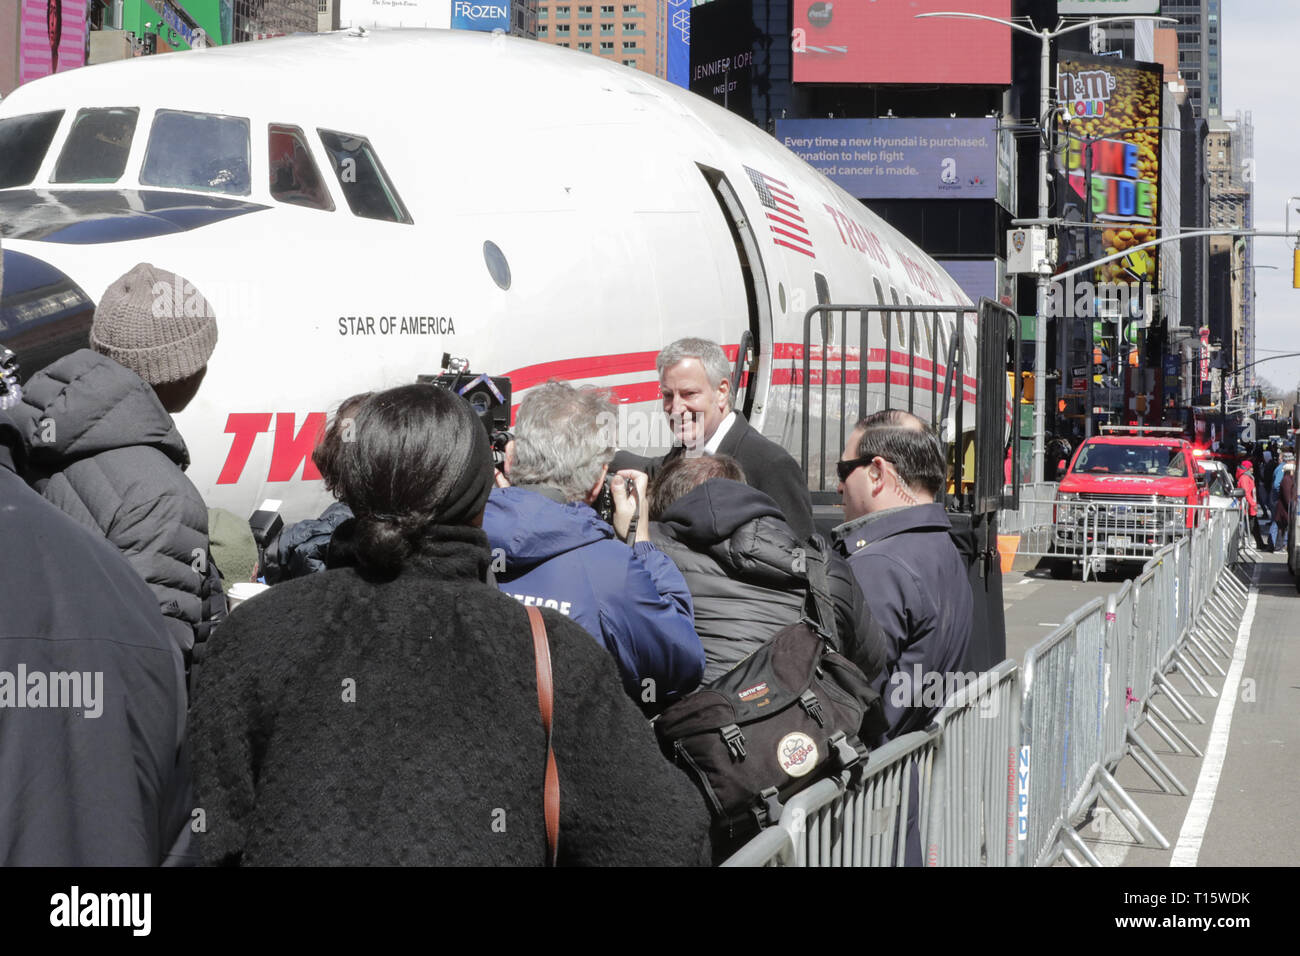 New York, NY, USA. 23rd Mar, 2019. Times Square, New York, USA, March 23, 2019 - Mayor Bill de Blasio, CEO and Managing Partner of MCR Tyler Morse, and Hotel Trades Council President Peter Ward helps celebrate the TWA Hotel Project, including the restoration of the 1958 Lockheed Constellation plane Connie today in Times Square, Manhattan.Photo: Luiz Rampelotto/EuropaNewswire Credit: Luiz Rampelotto/ZUMA Wire/Alamy Live News - Stock Image